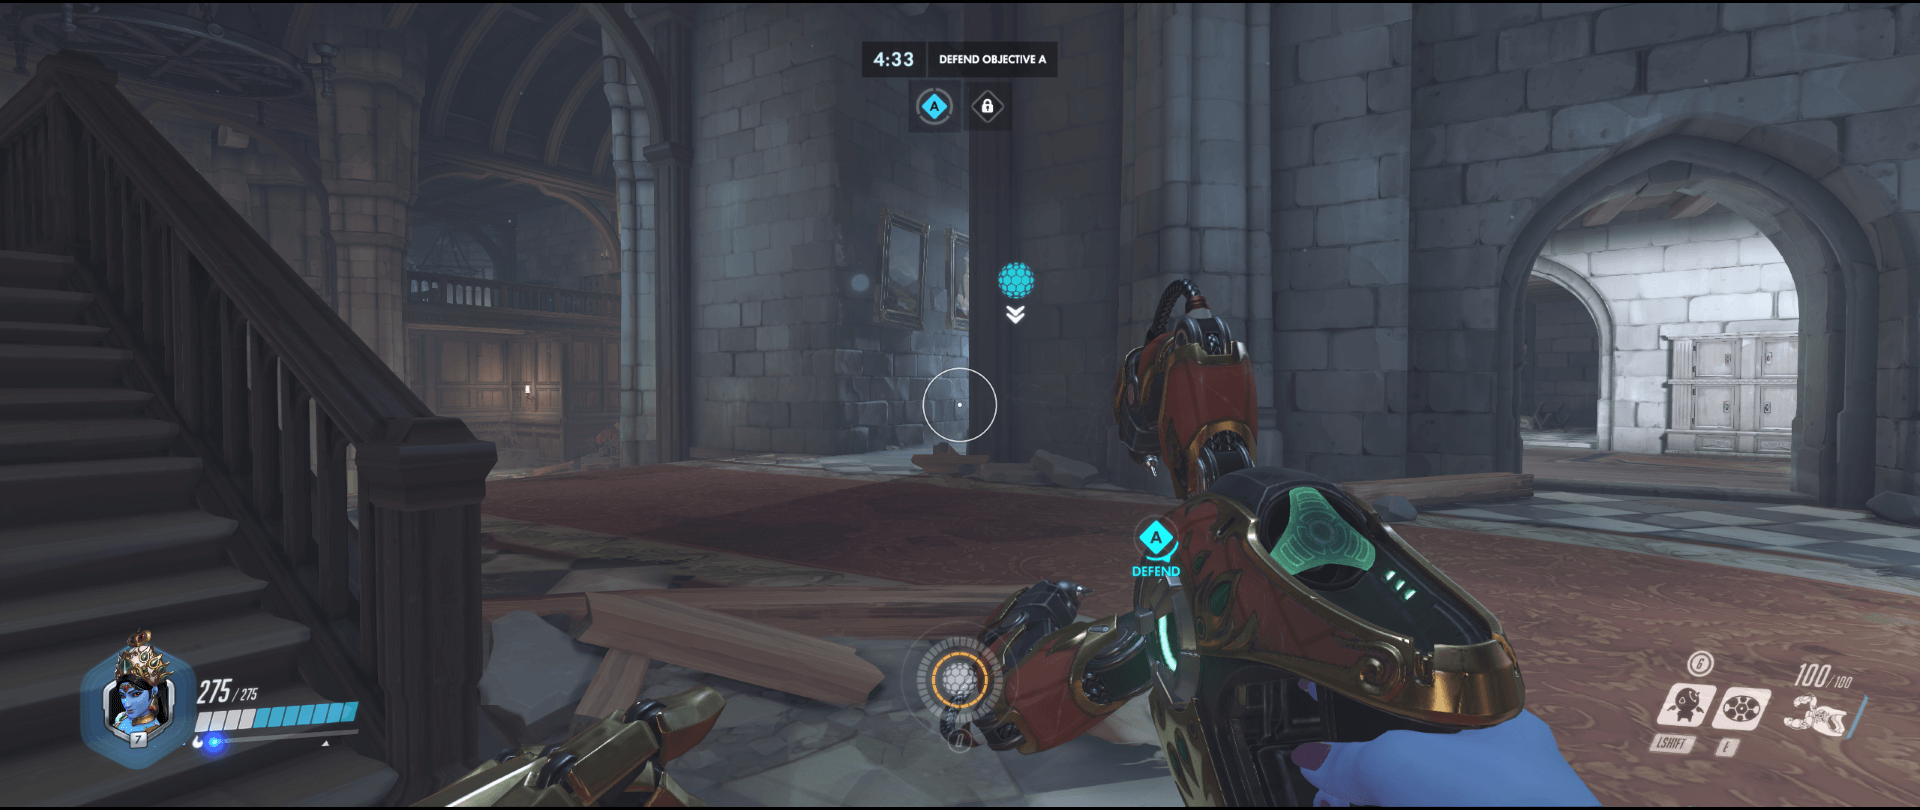 Symmetra shield generator spot Eichenwalde  main range third point.png